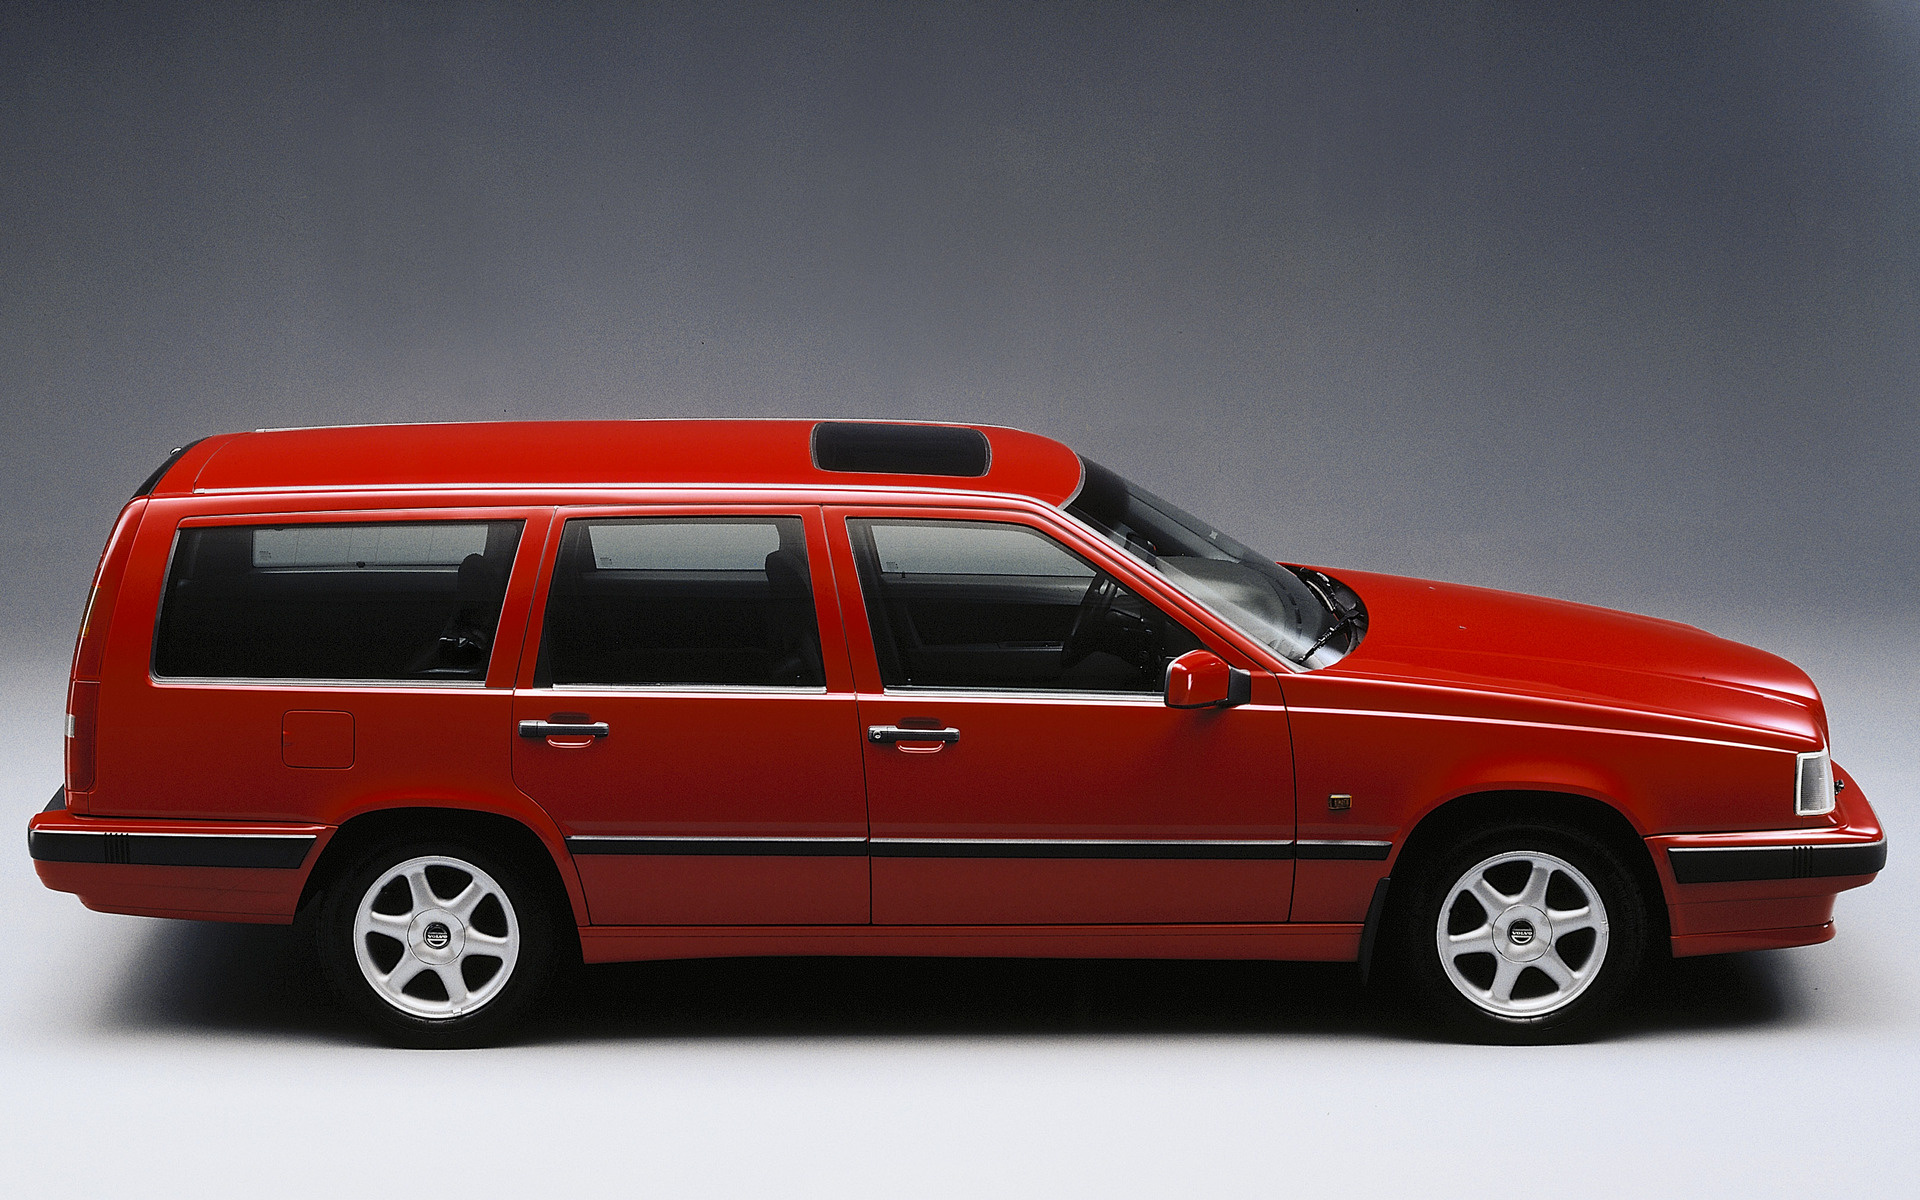 volvo 850 glt kombi 1992 wallpapers and hd images car. Black Bedroom Furniture Sets. Home Design Ideas